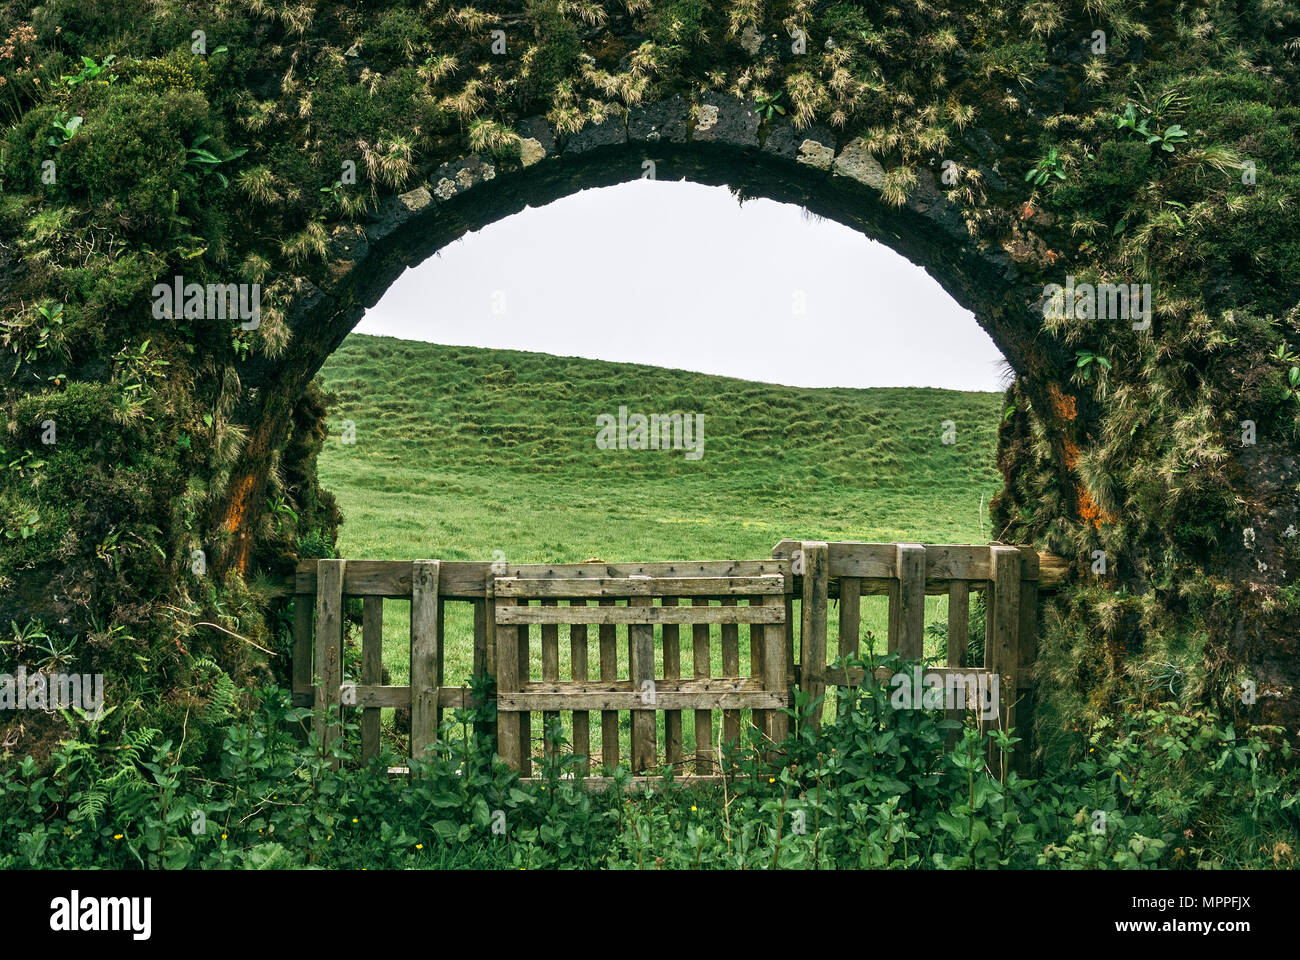 A fence in one of the arches of the the old aqueducts at São Miguel Island, Azores. - Stock Image